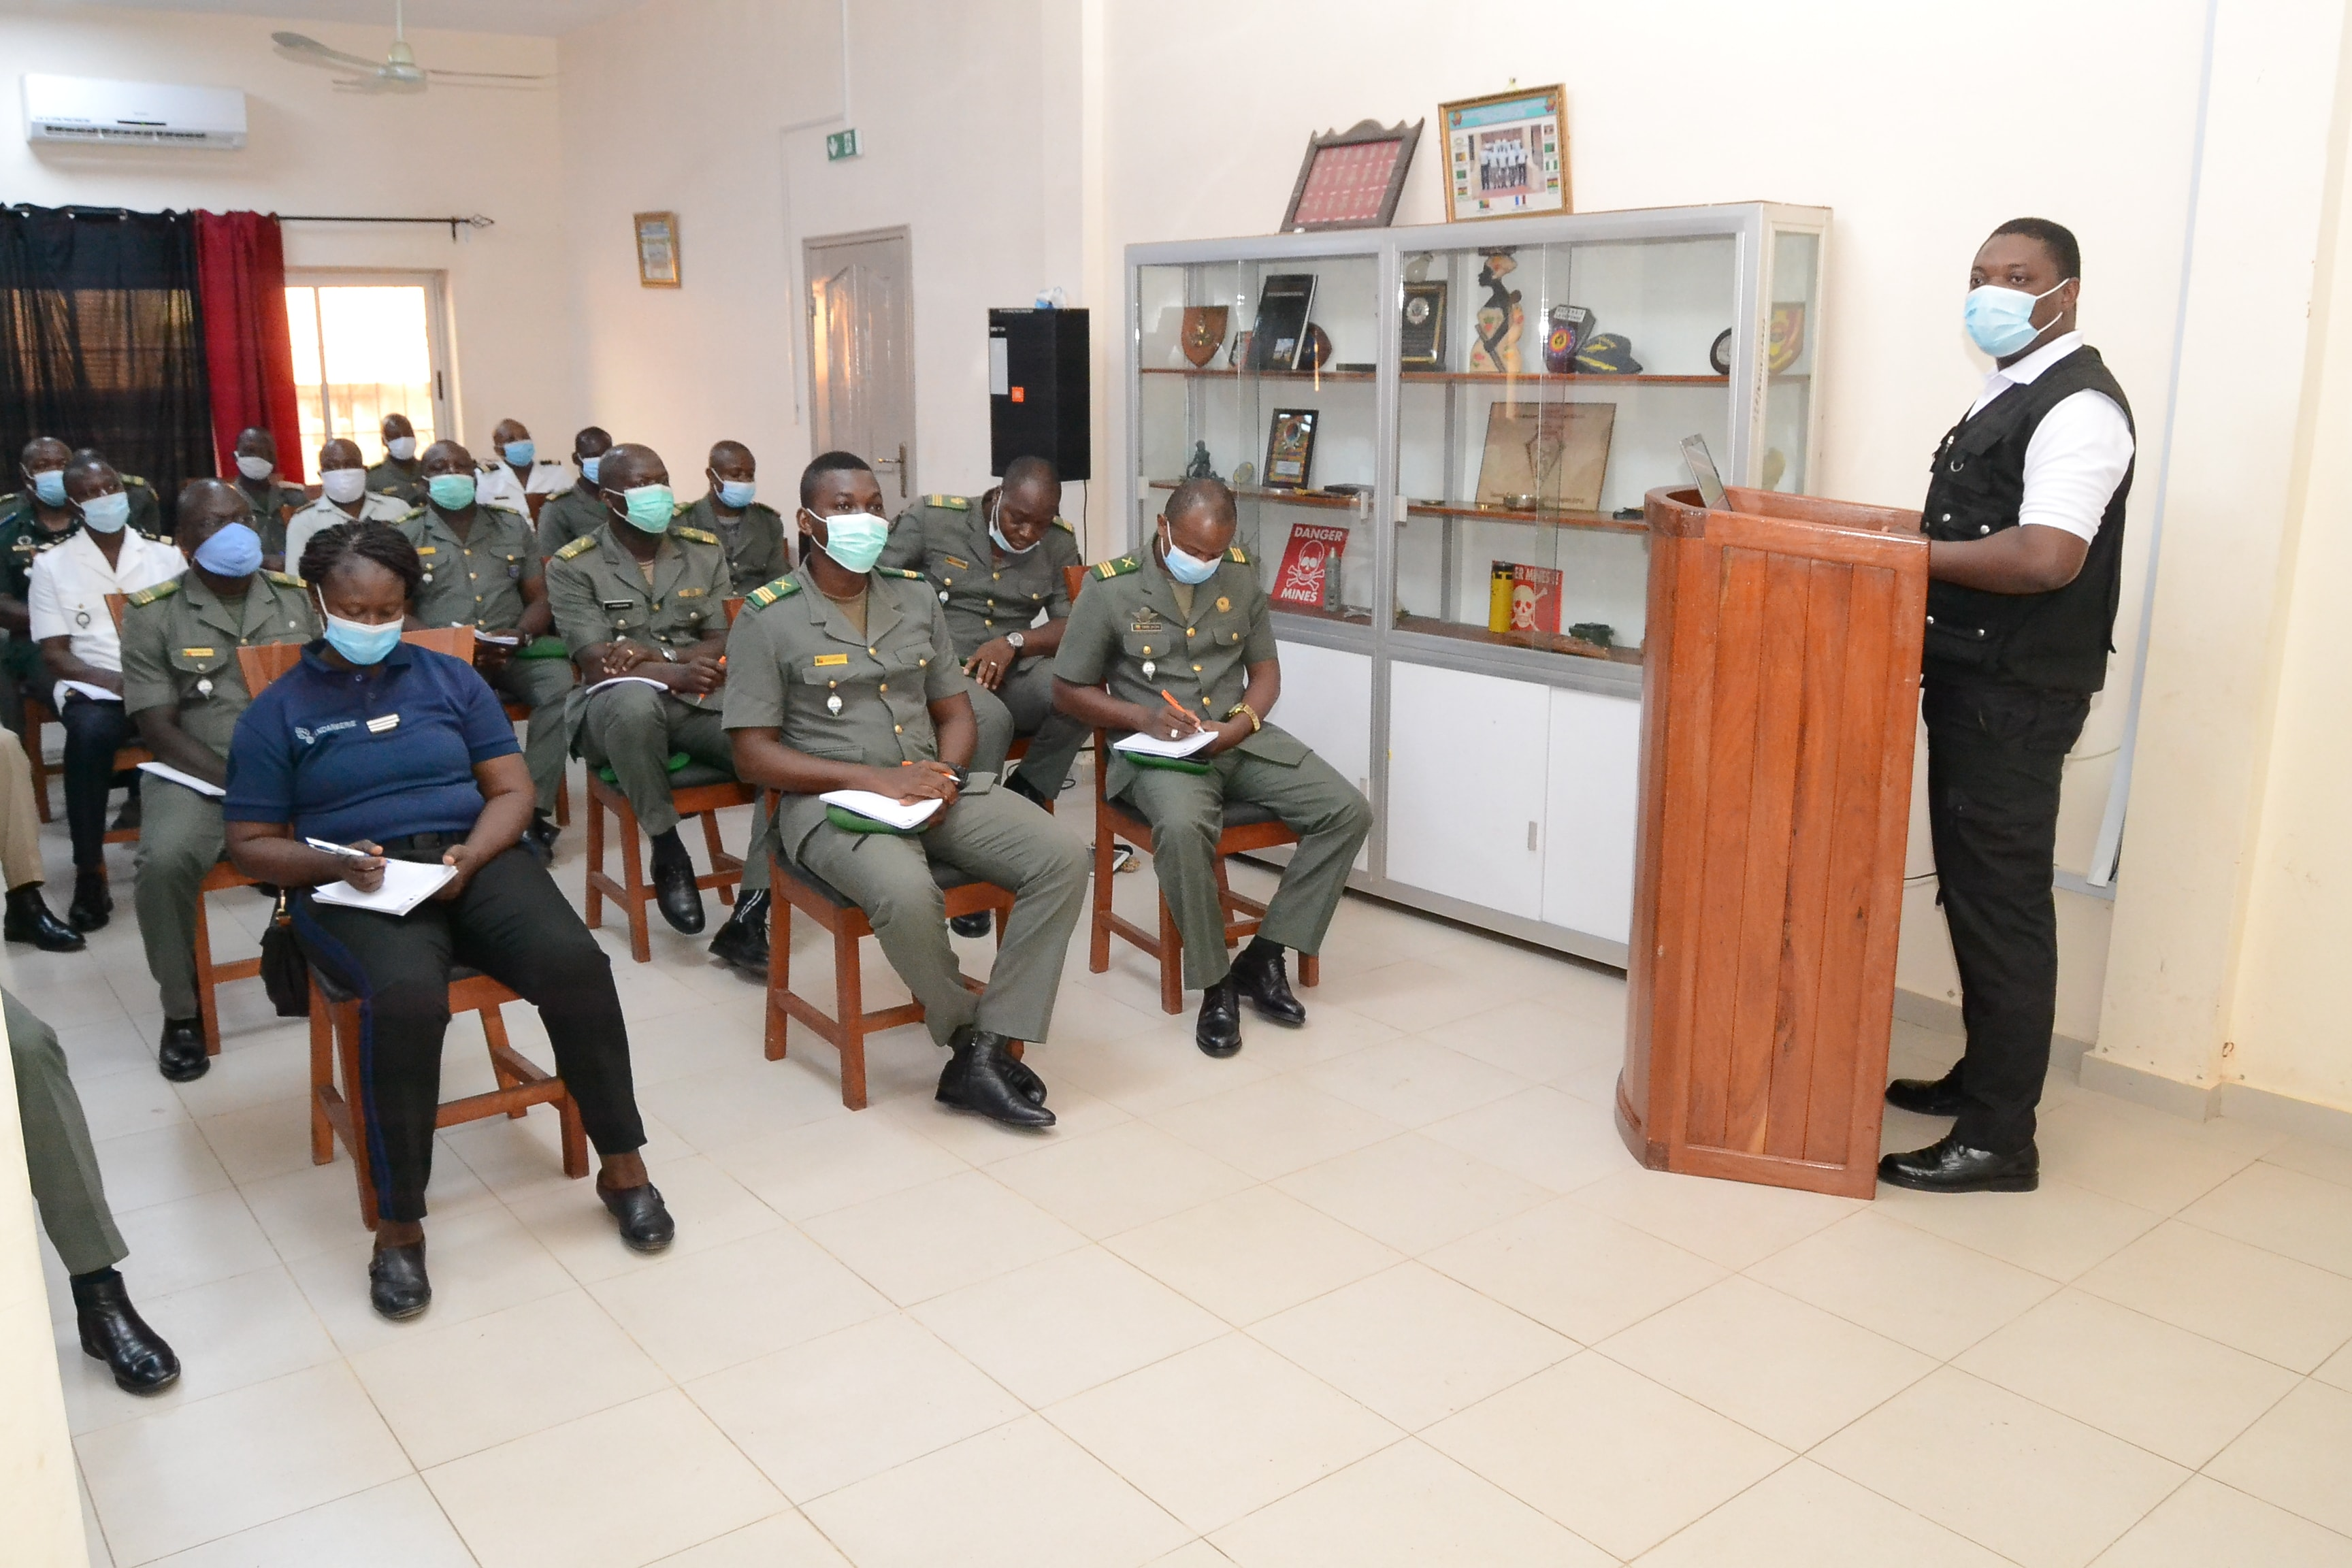 The 16th General Staff Course of Ecole Nationale Supérieure des Armées (ENSA) visiting the CPADD